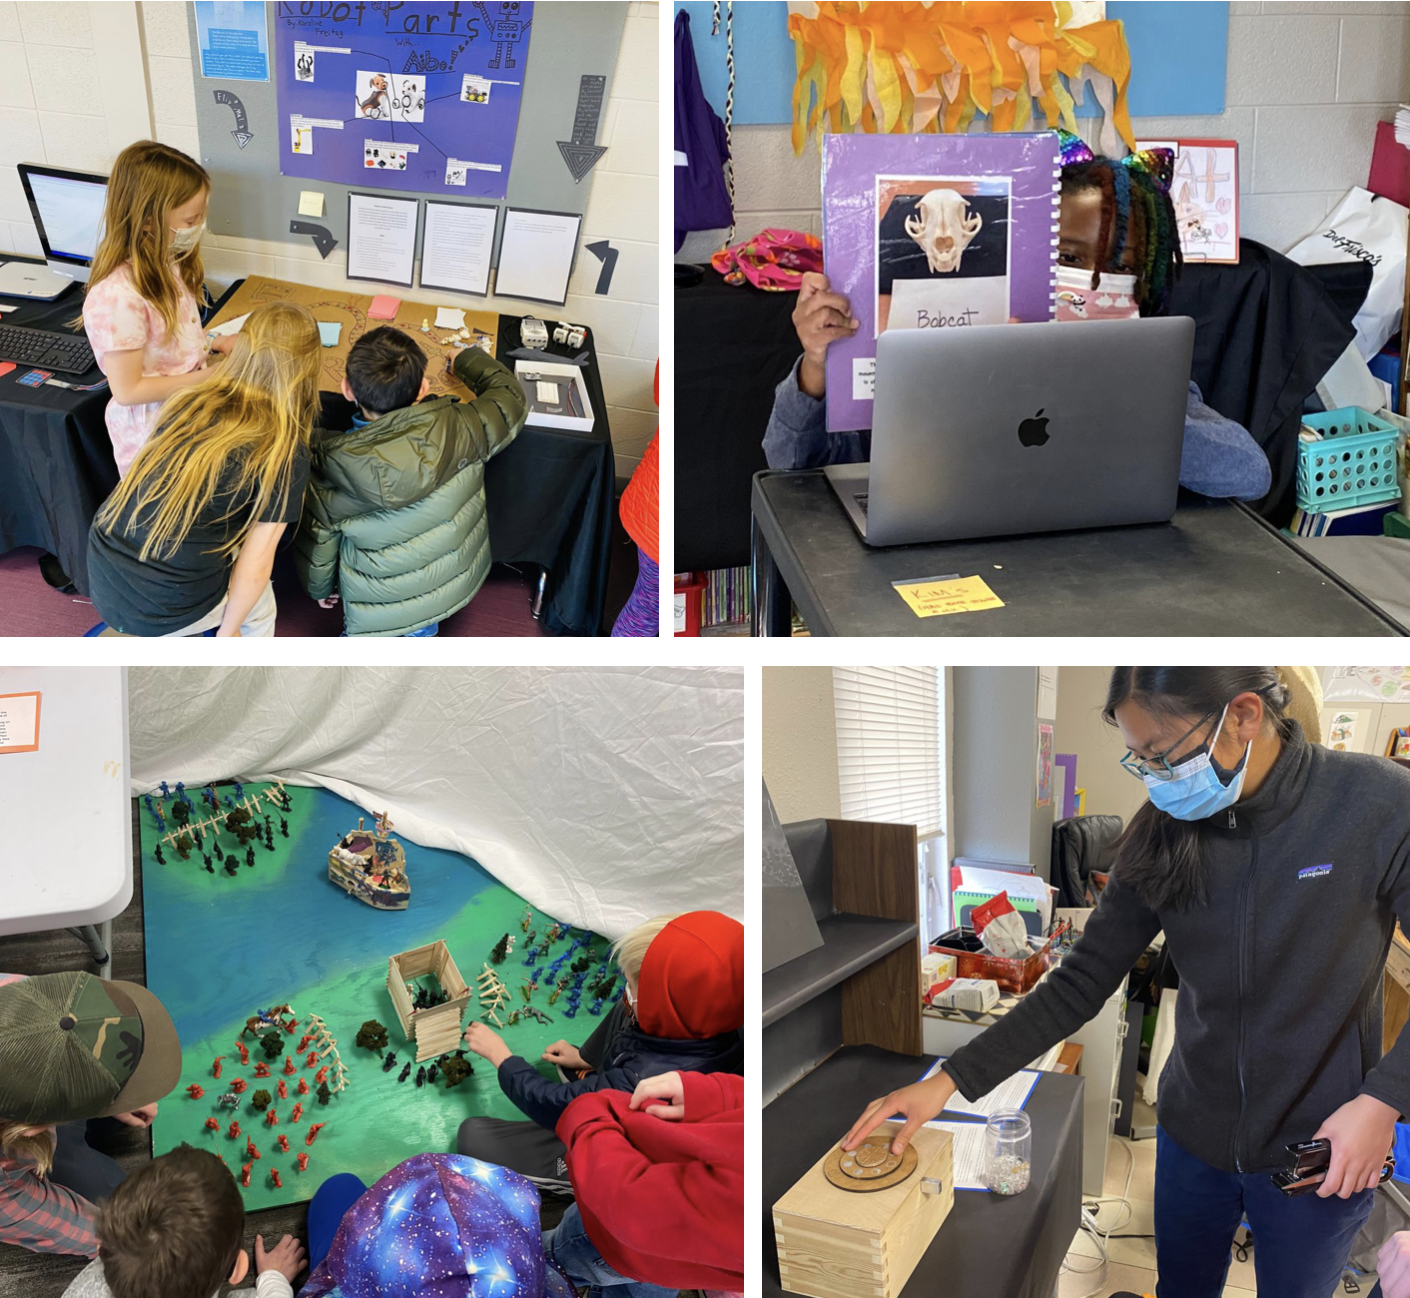 Students at their EXPO displays.